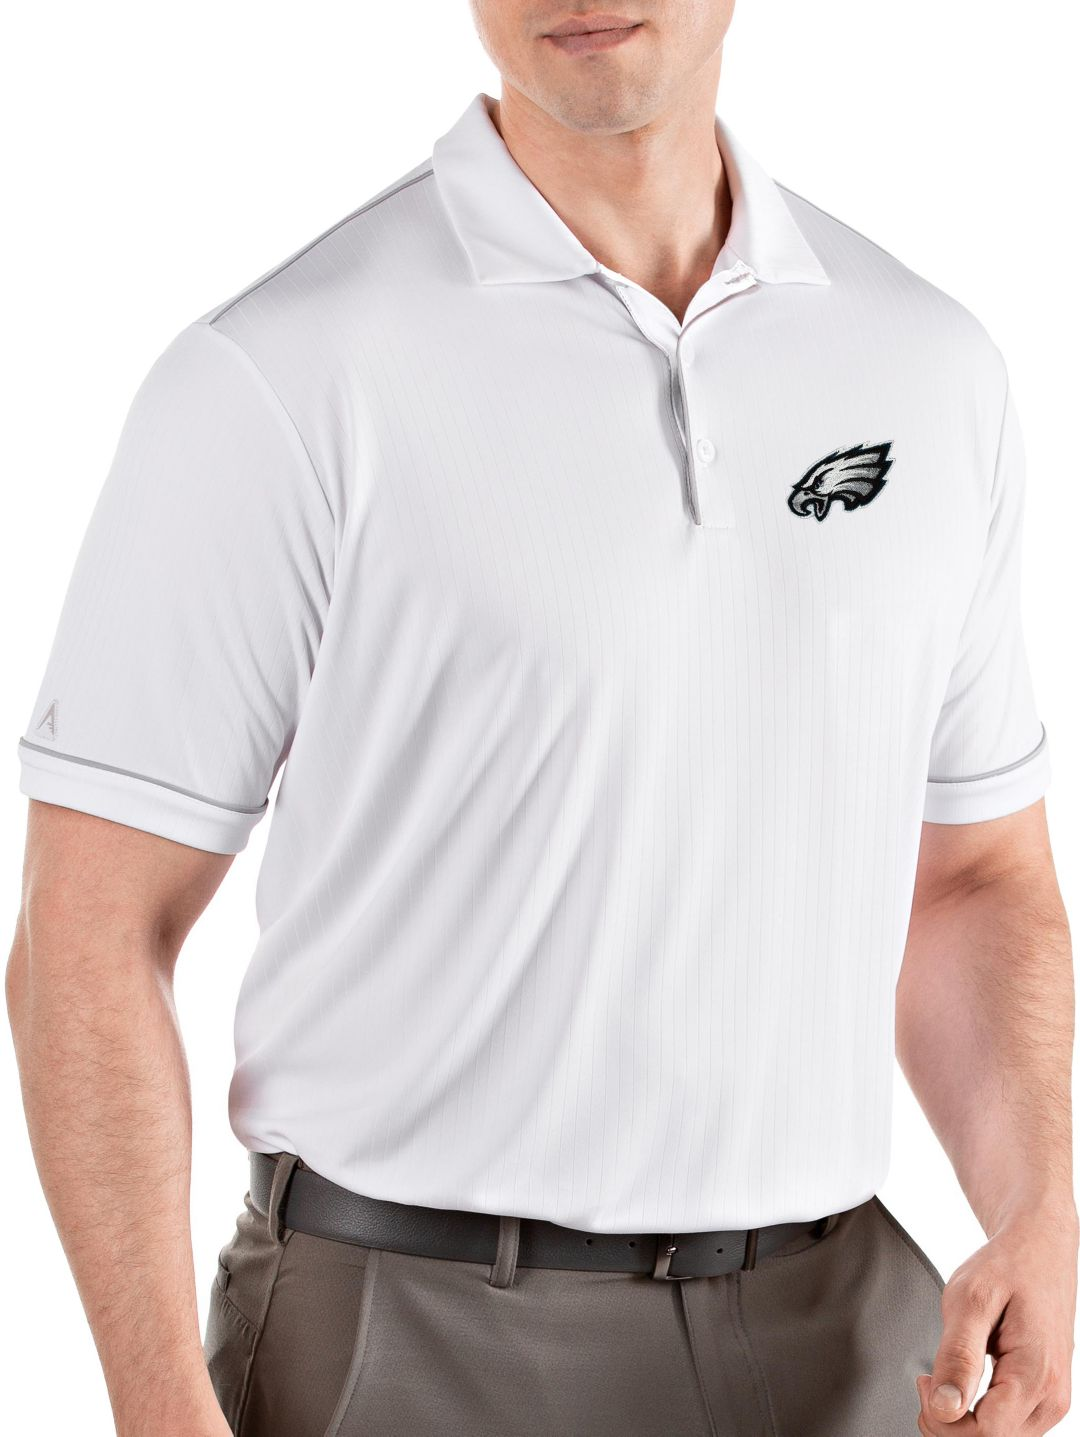 finest selection 14423 7a549 Antigua Men's Philadelphia Eagles Salute White Polo